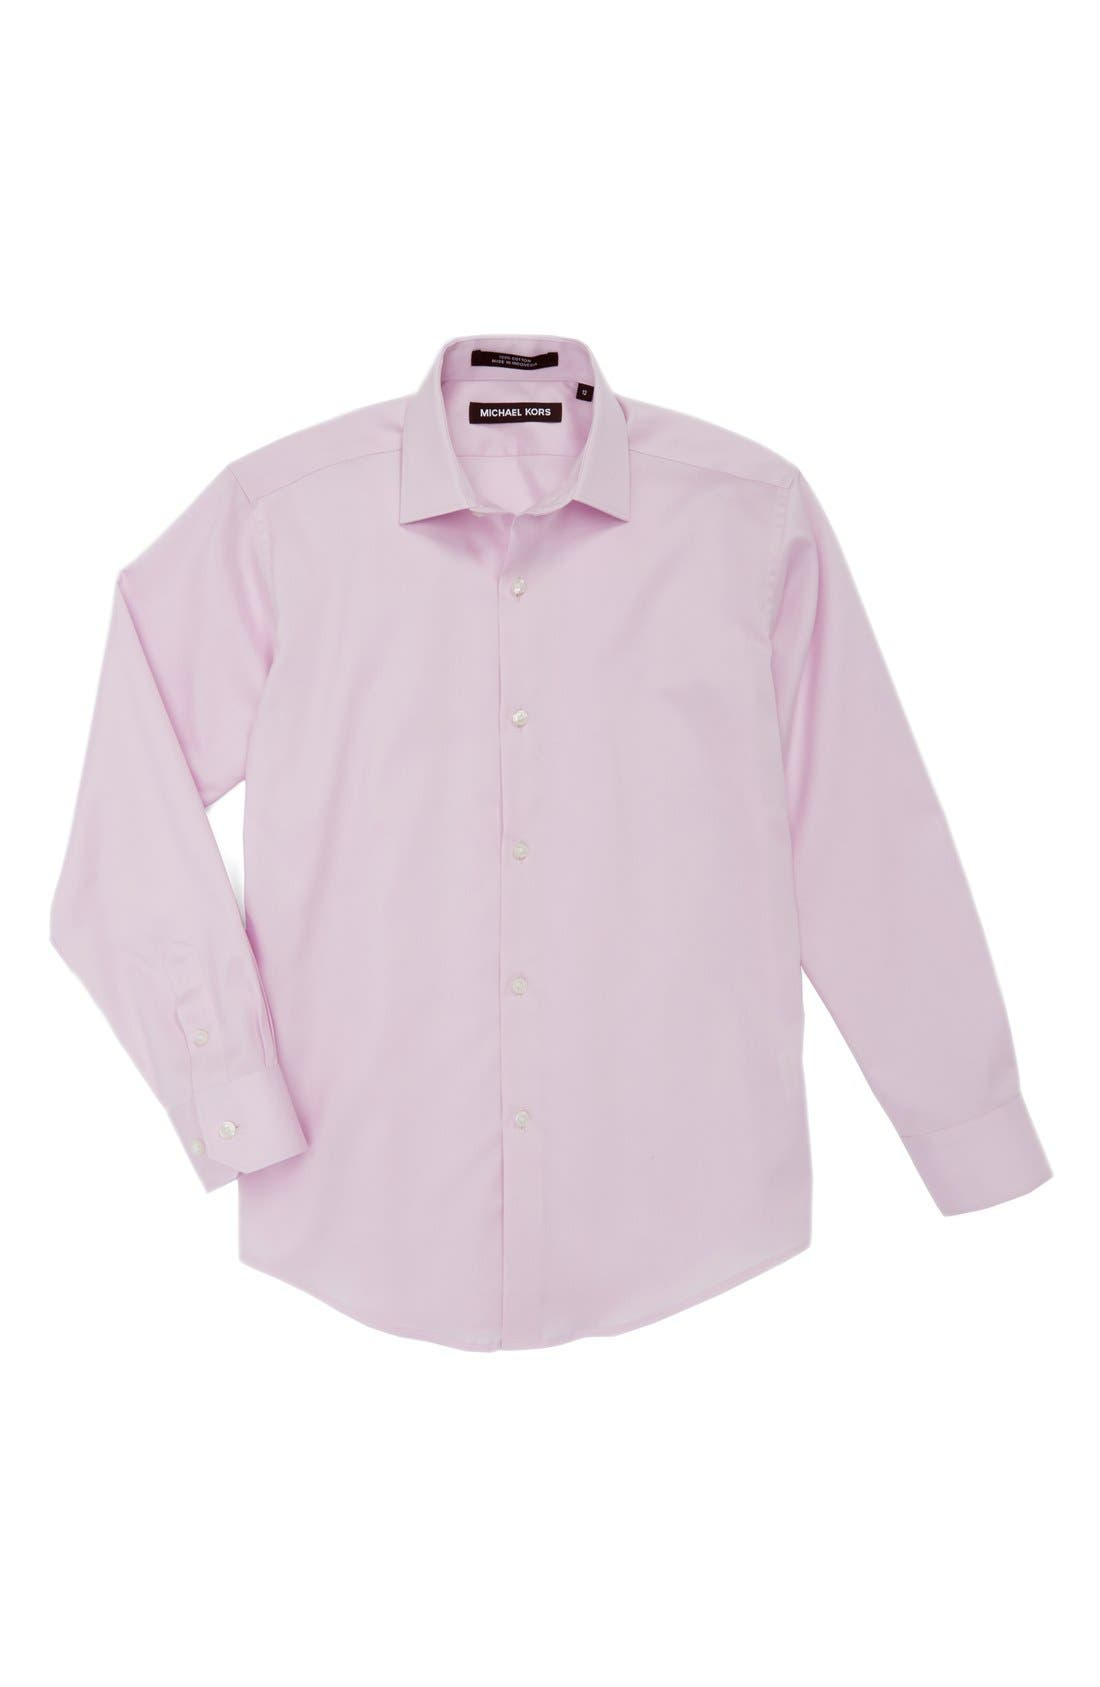 Main Image - Michael Kors Woven Cotton Dress Shirt (Big Boys)